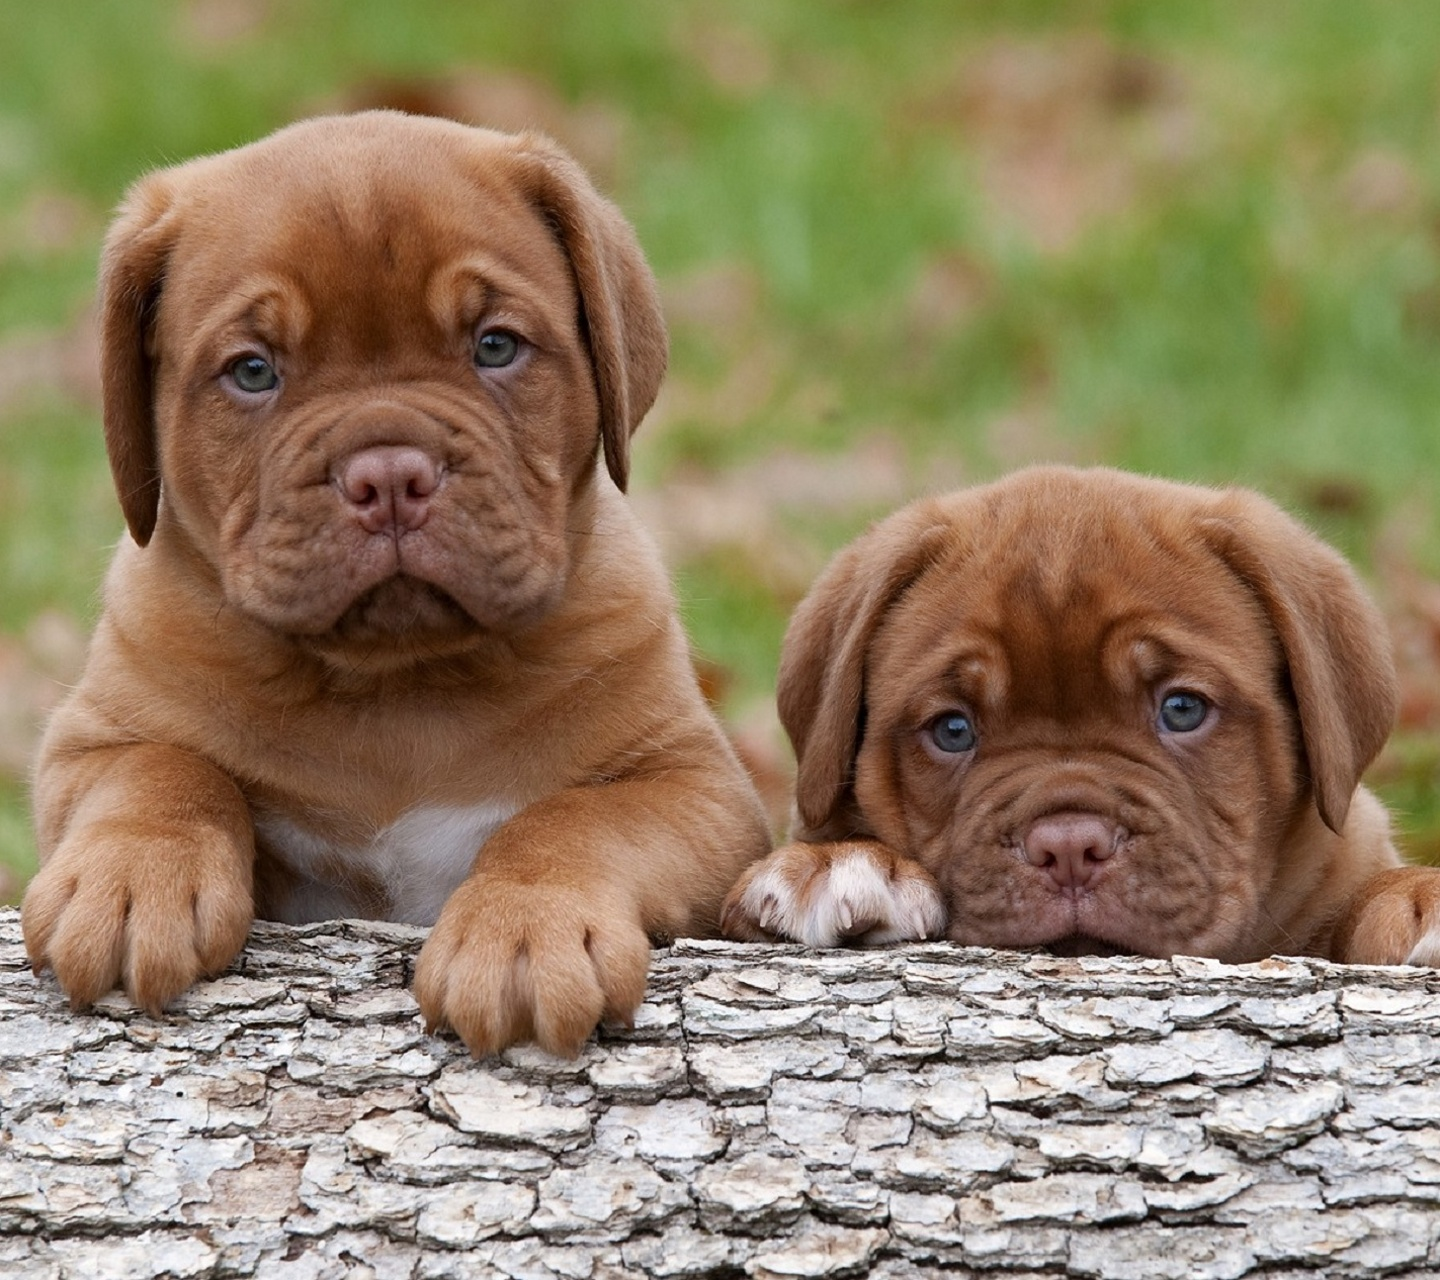 Cute Puppies Wallpaper Background for Mobiles Wallpapers 1440x1280